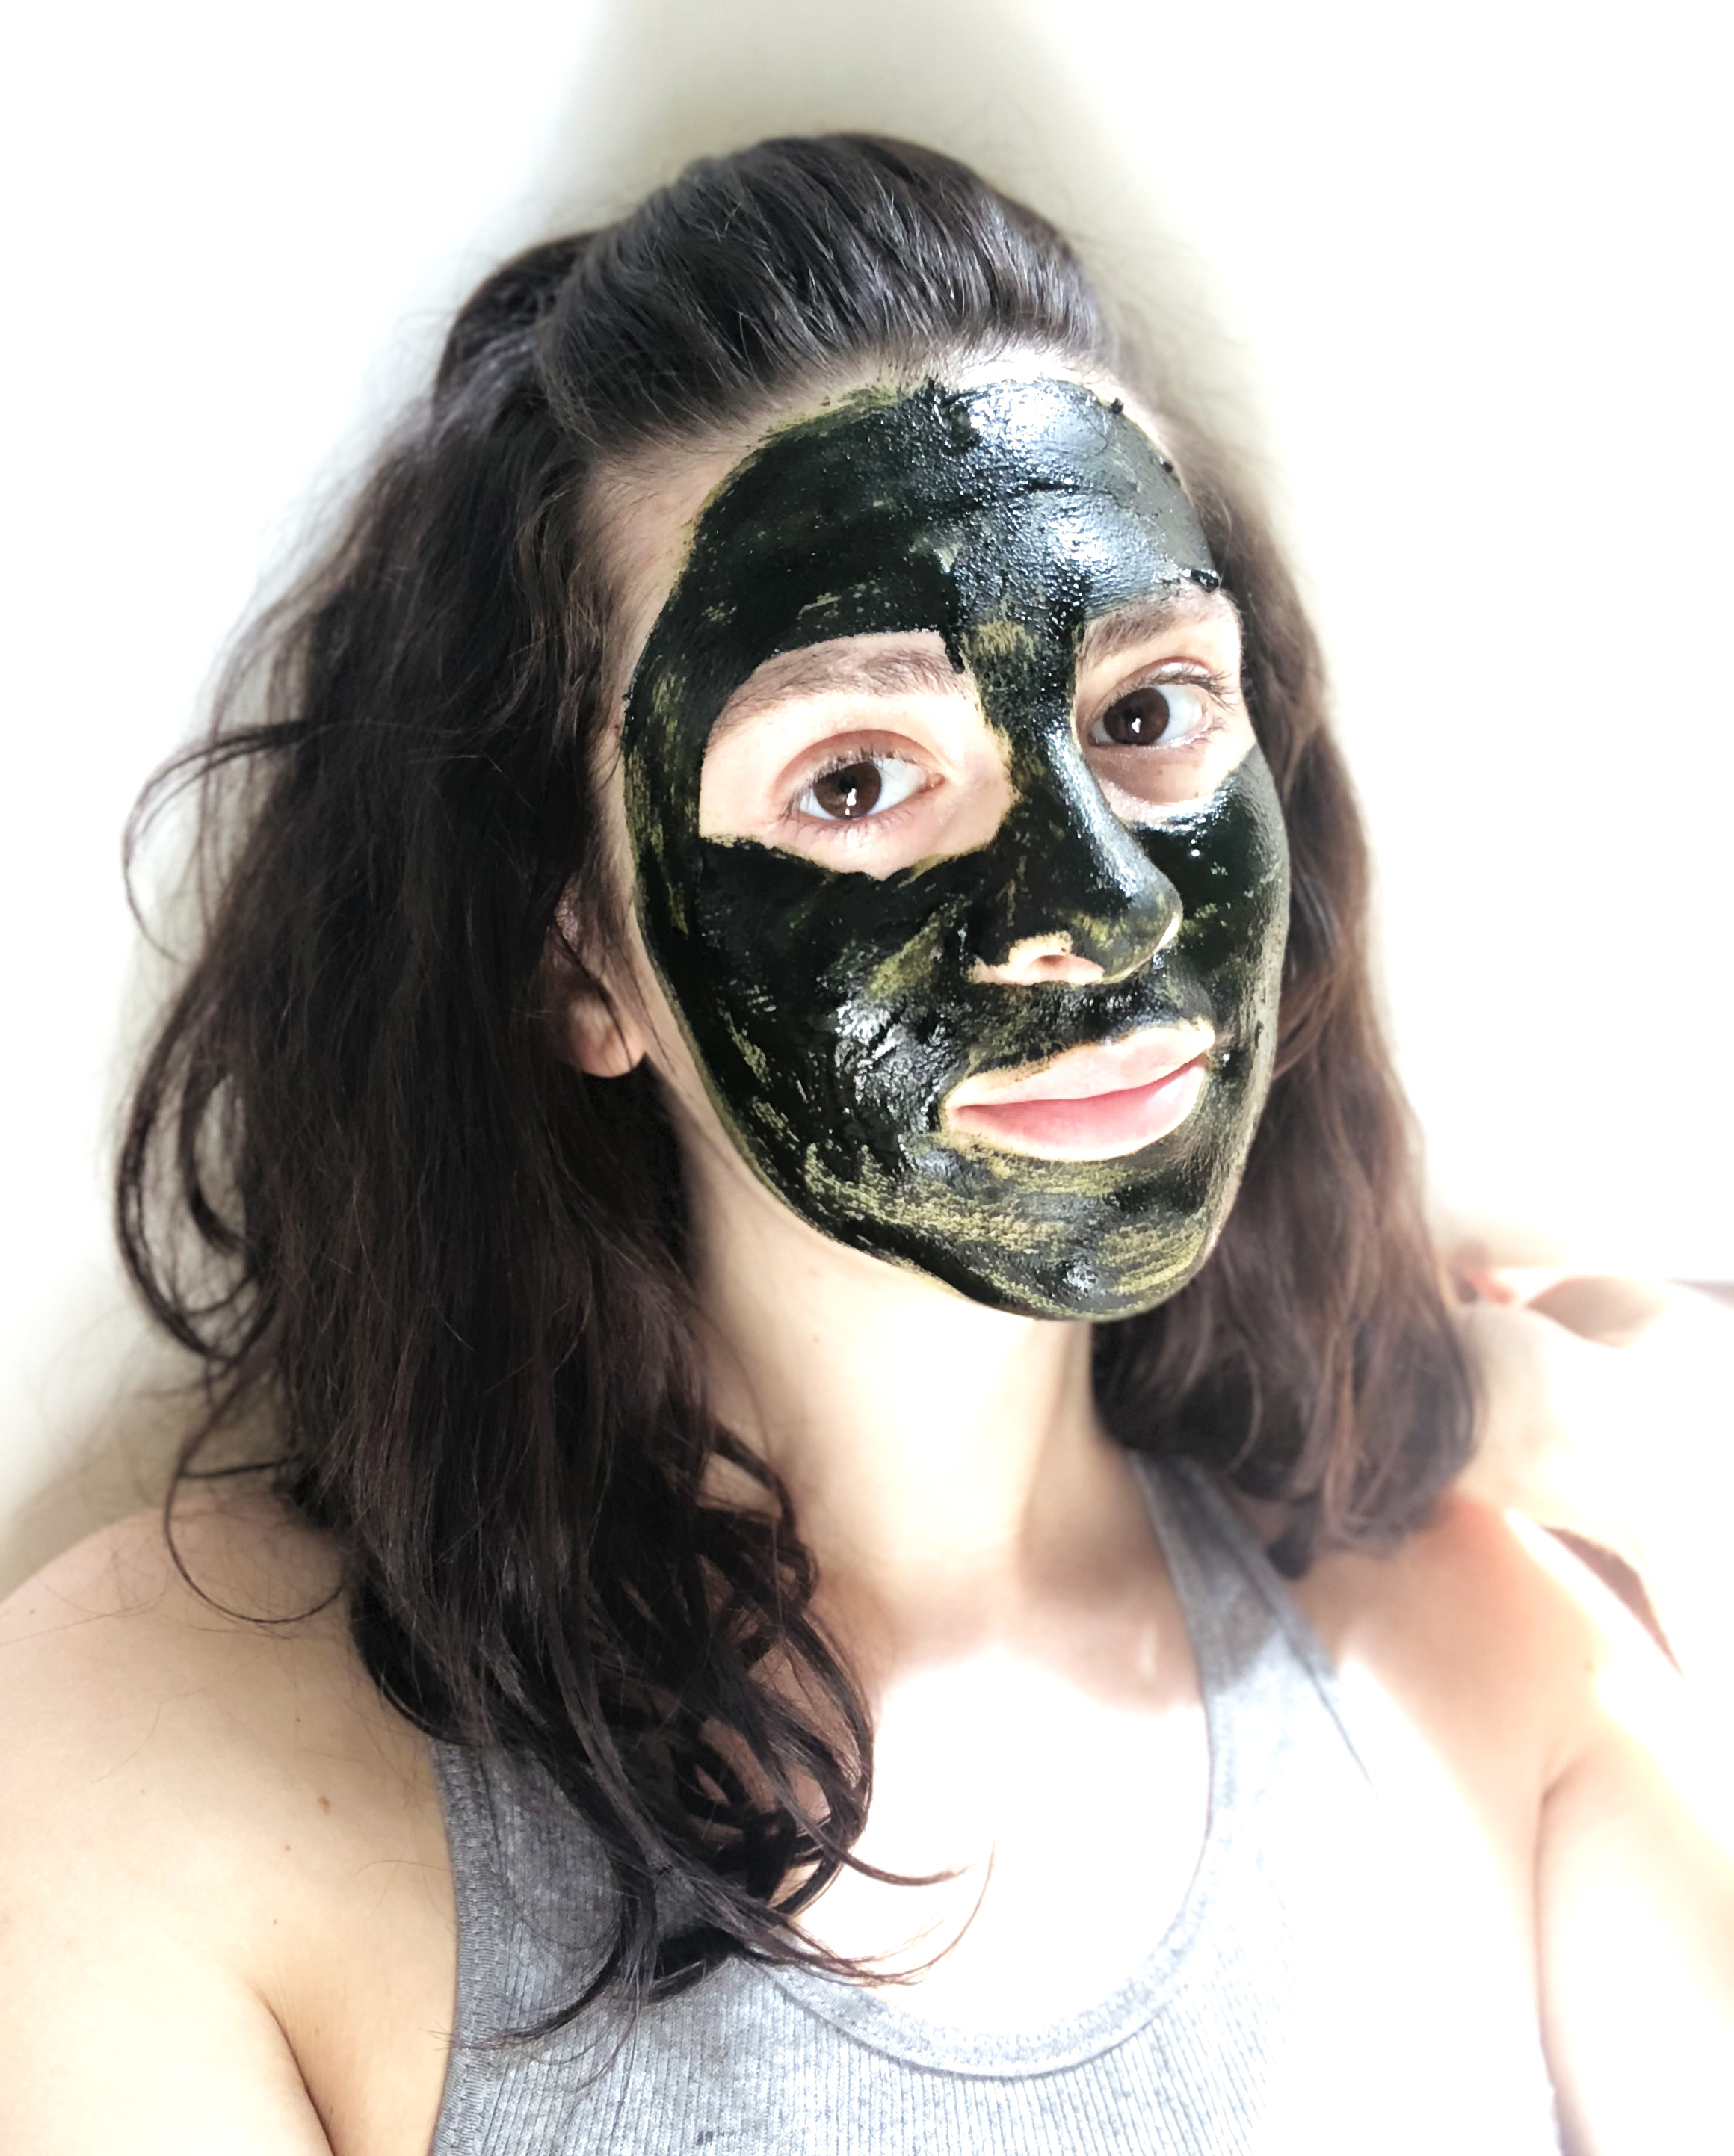 chlorella-face-mask-diy-anti-acne-mask.jpg